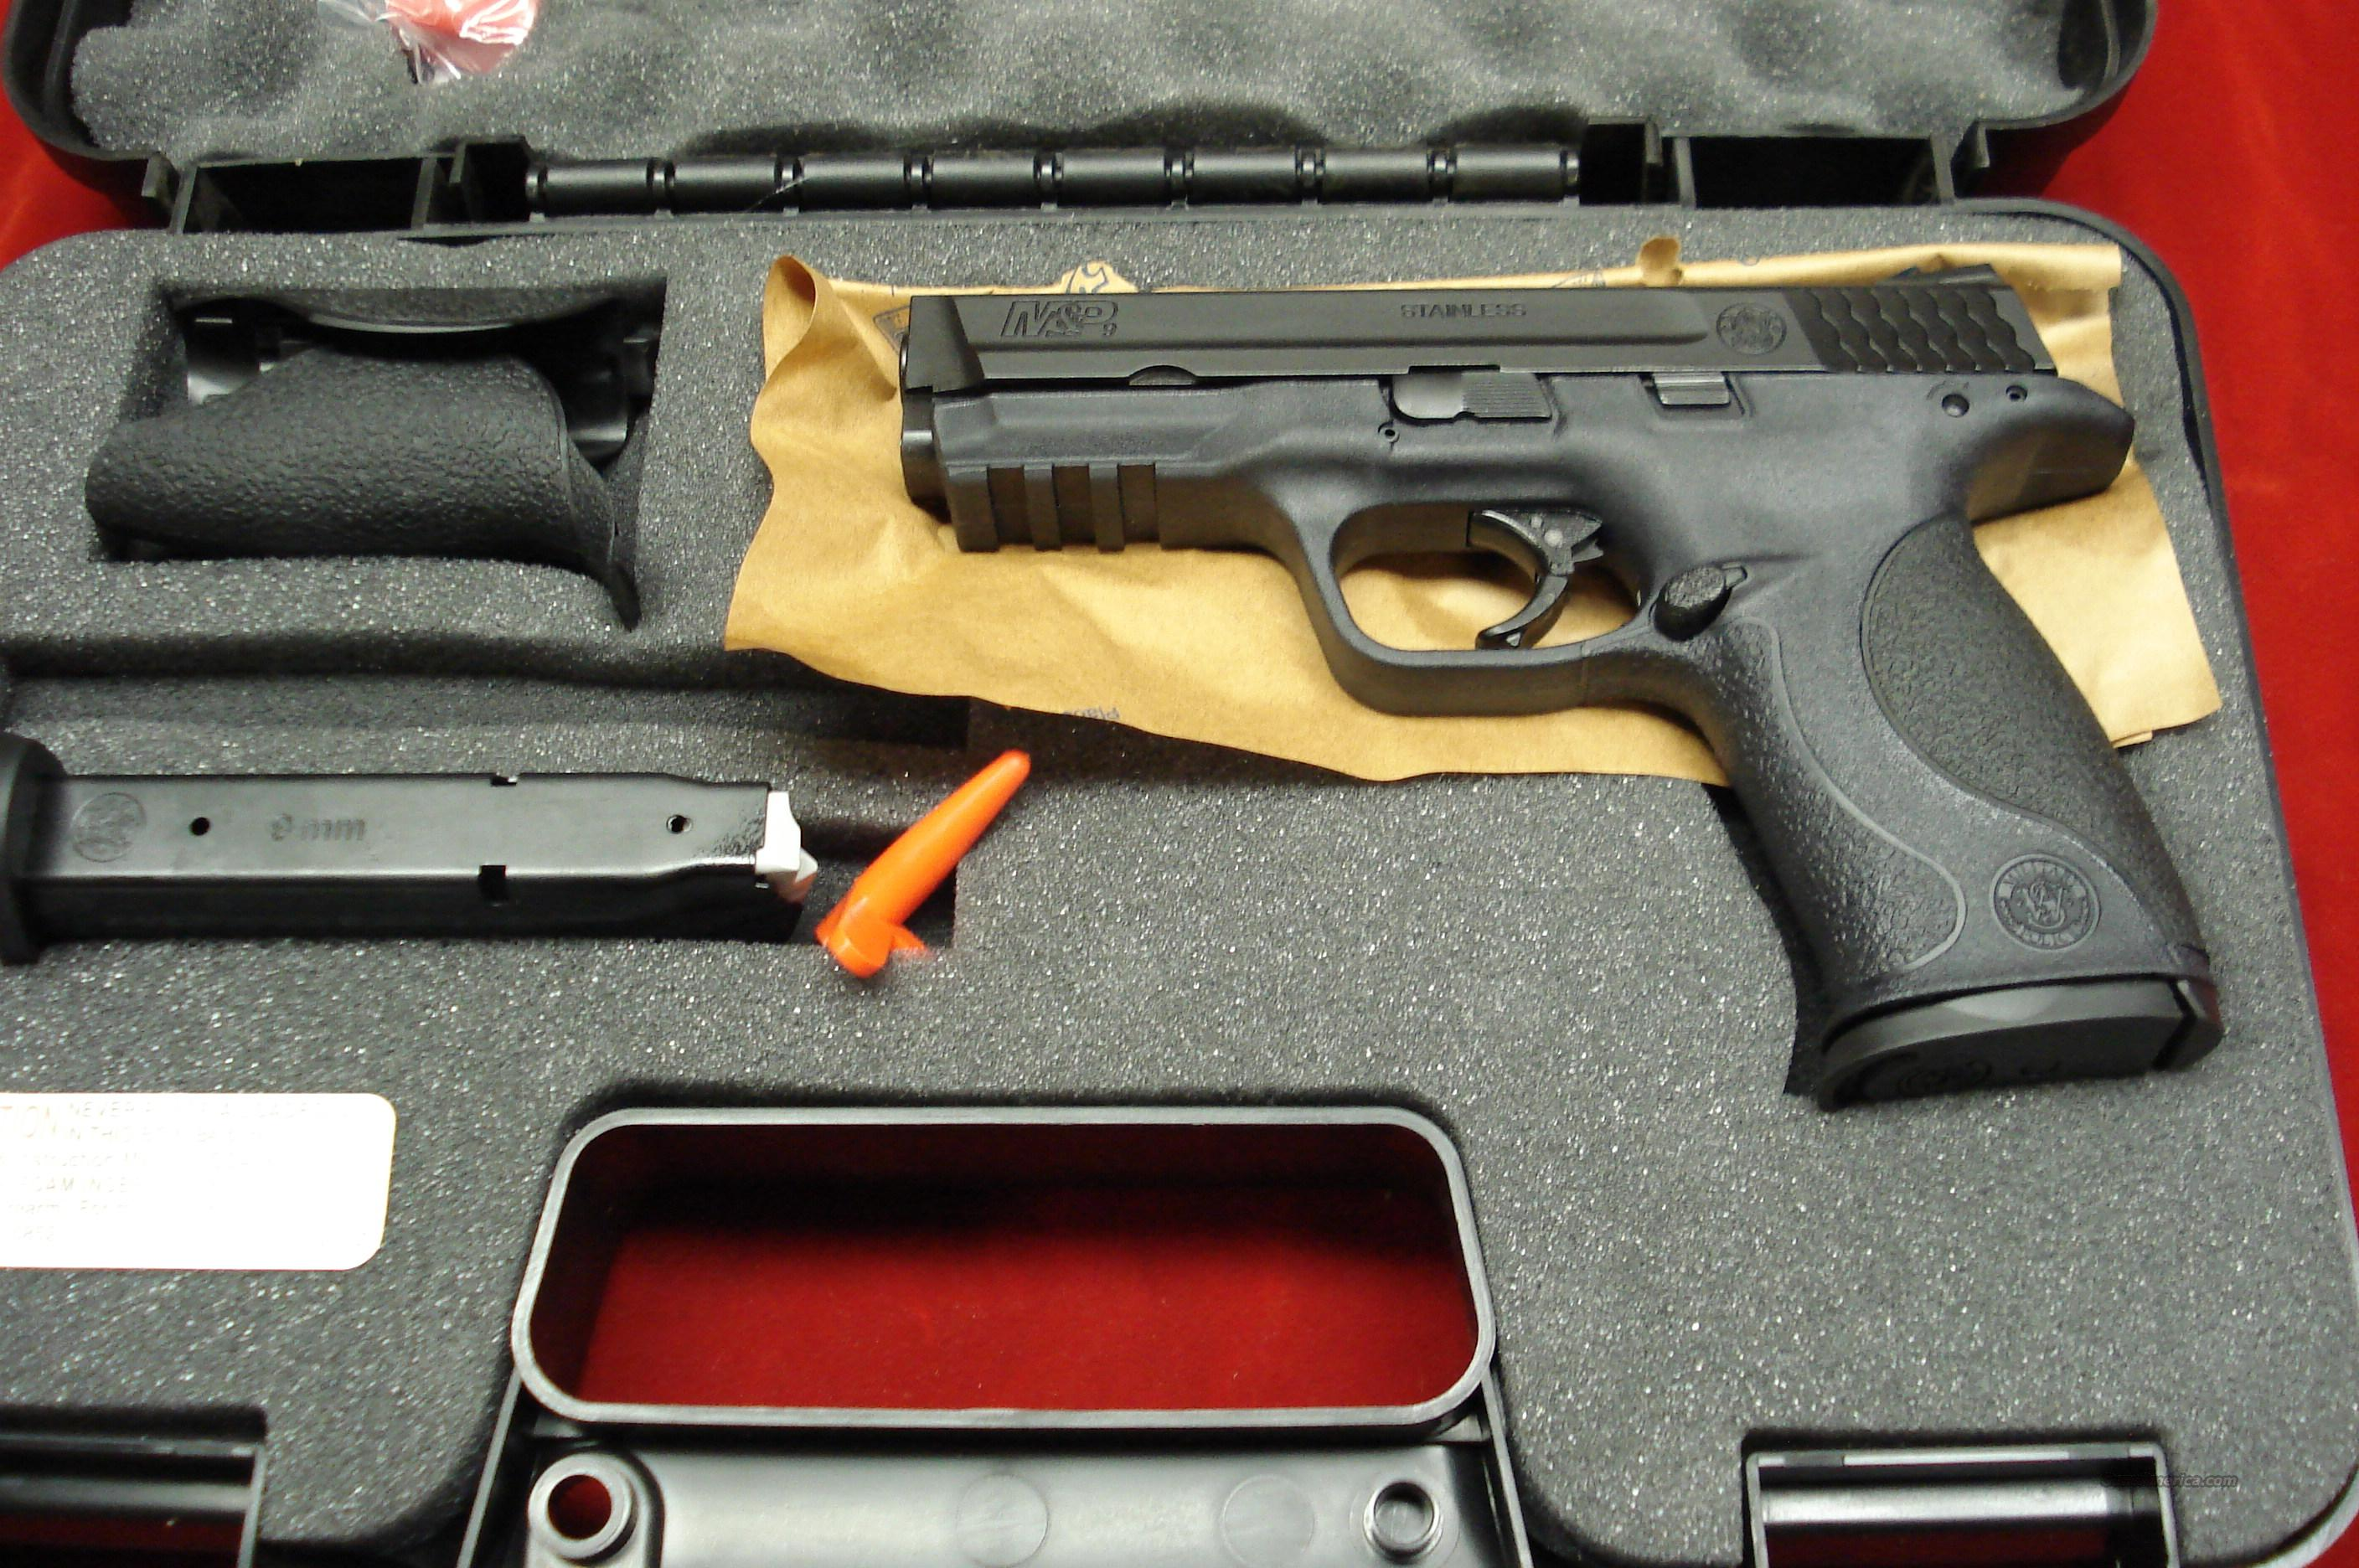 SMITH AND WESSON M&P 9MM HIGH/CAP NEW {{ REBATE }}  Guns > Pistols > Smith & Wesson Pistols - Autos > Polymer Frame